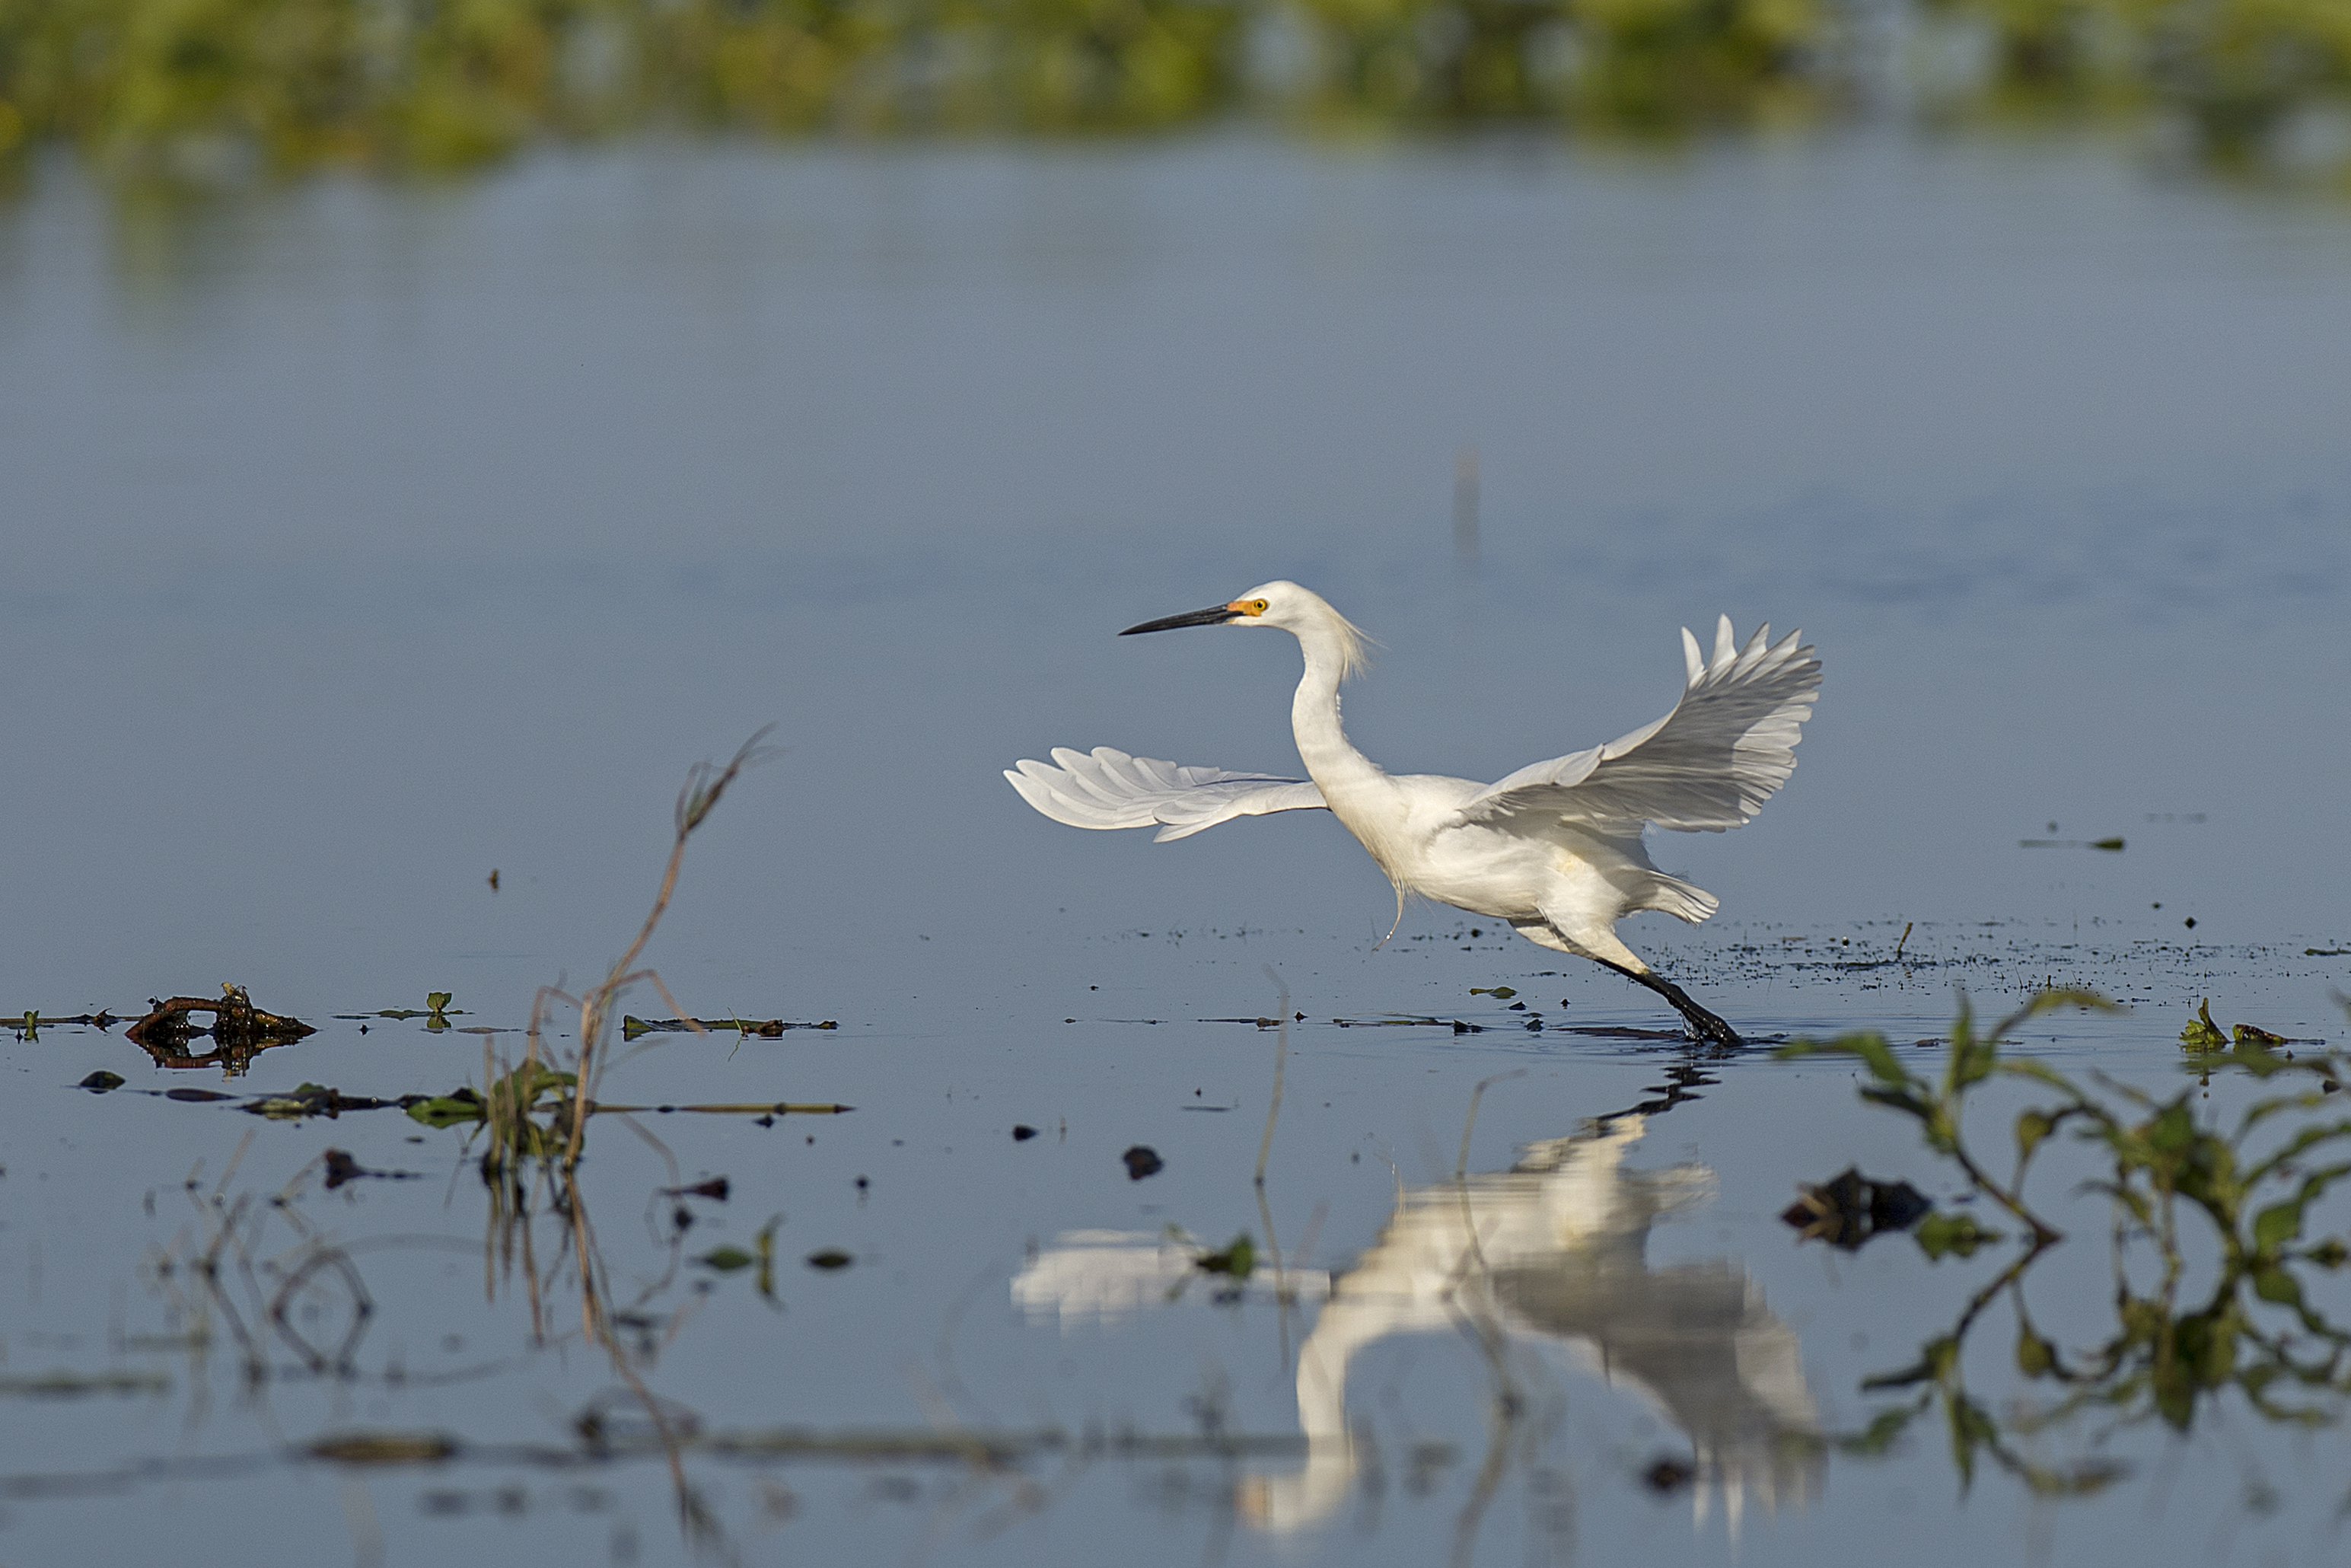 Snowy egret starts its flight above Gulf of Mexico Waters. FWC photo by Andy Wraithmell